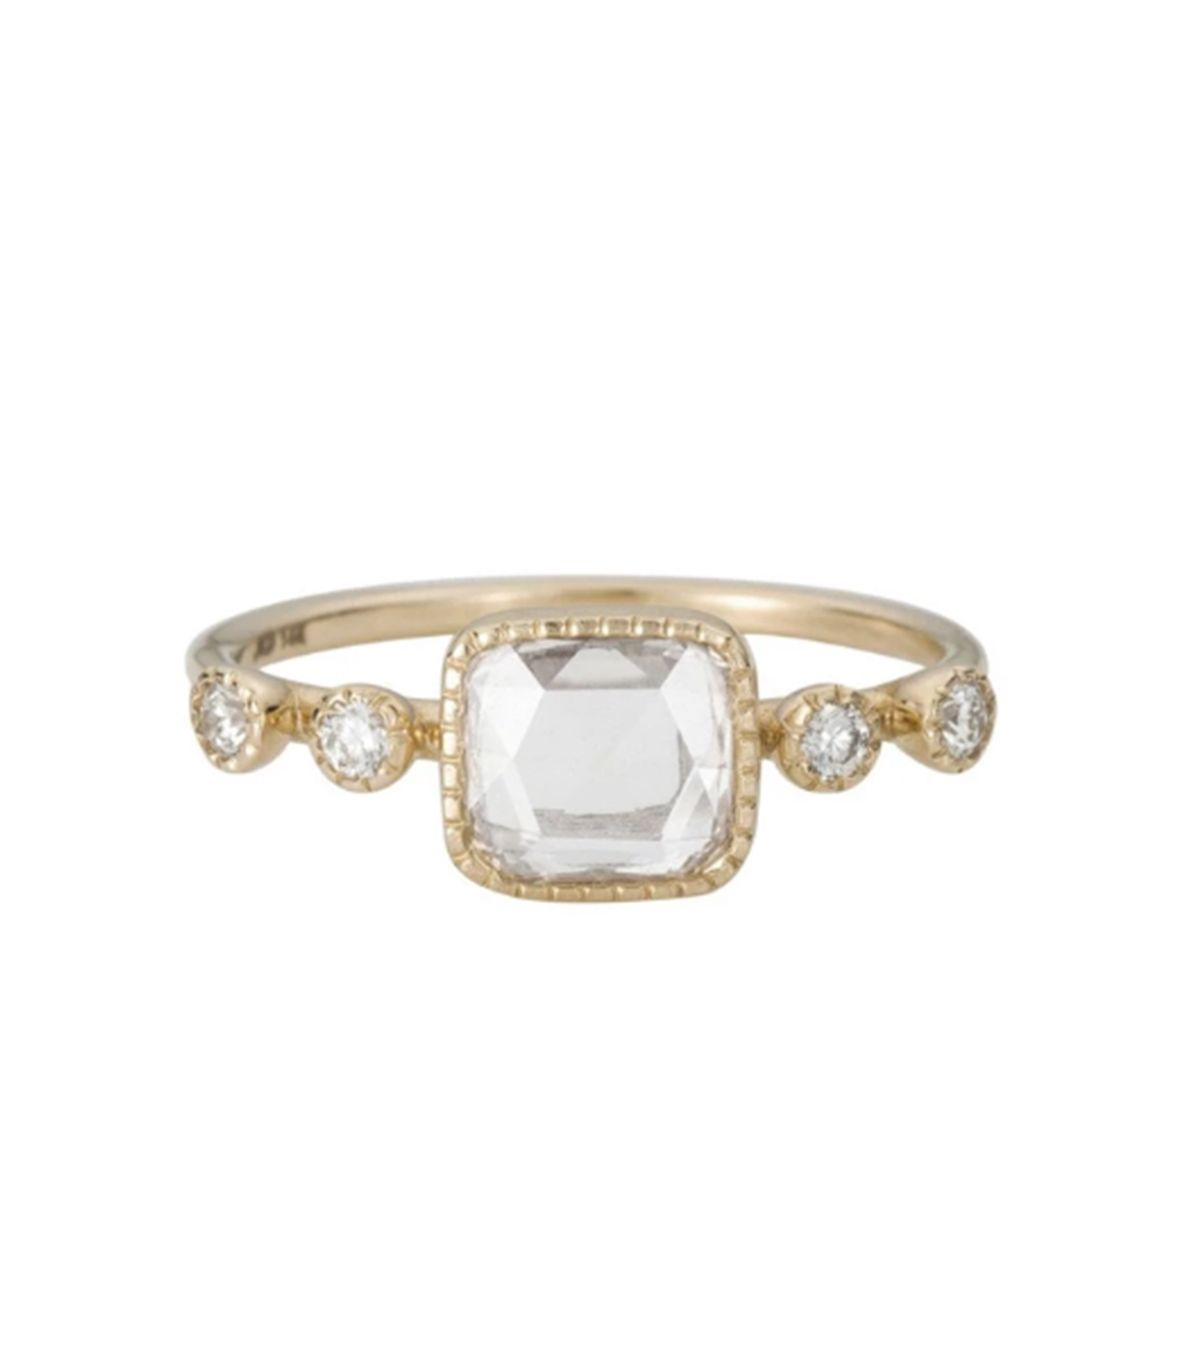 7 Things That Always Make an Engagement Ring Look Cheap 3